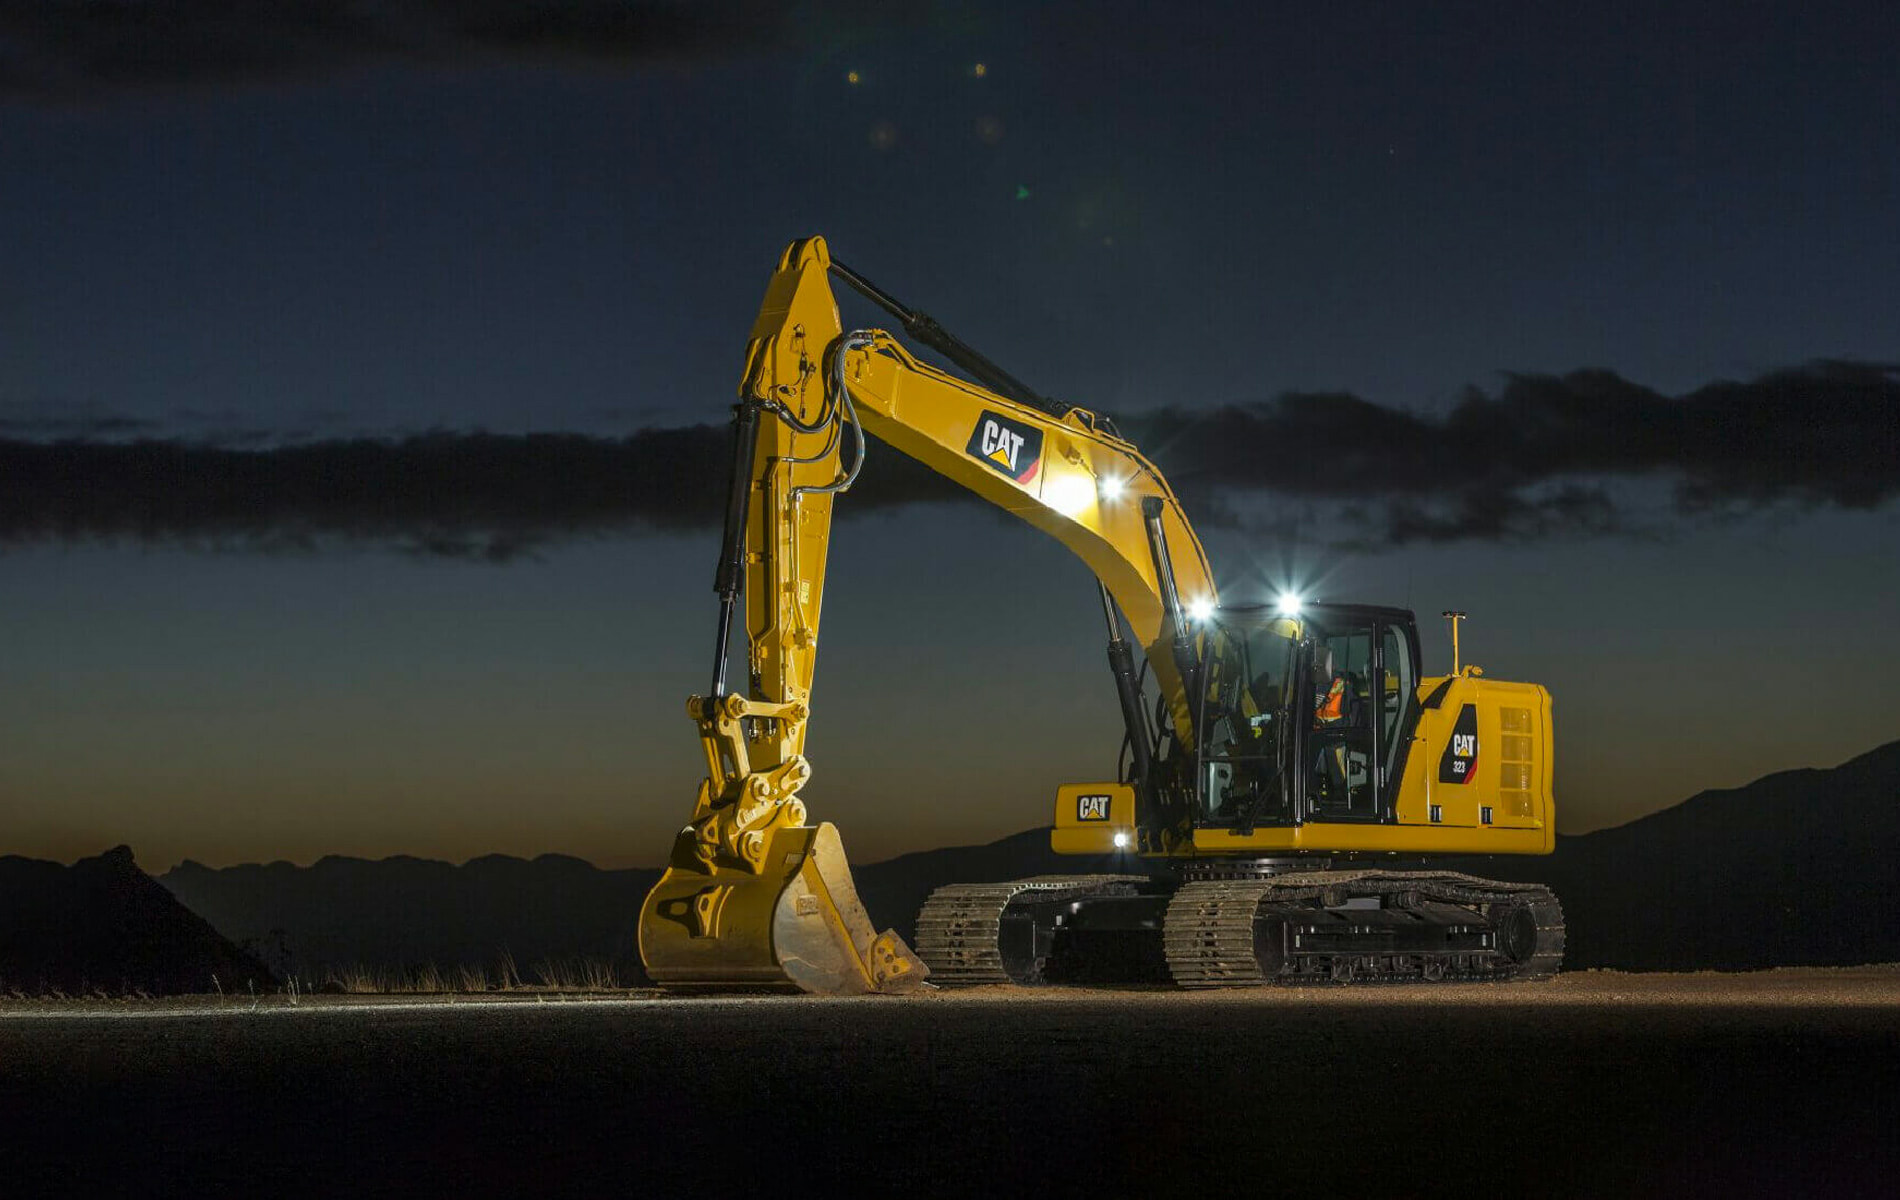 Yellow Caterpillar hydraulic shovel at night time with headlights on